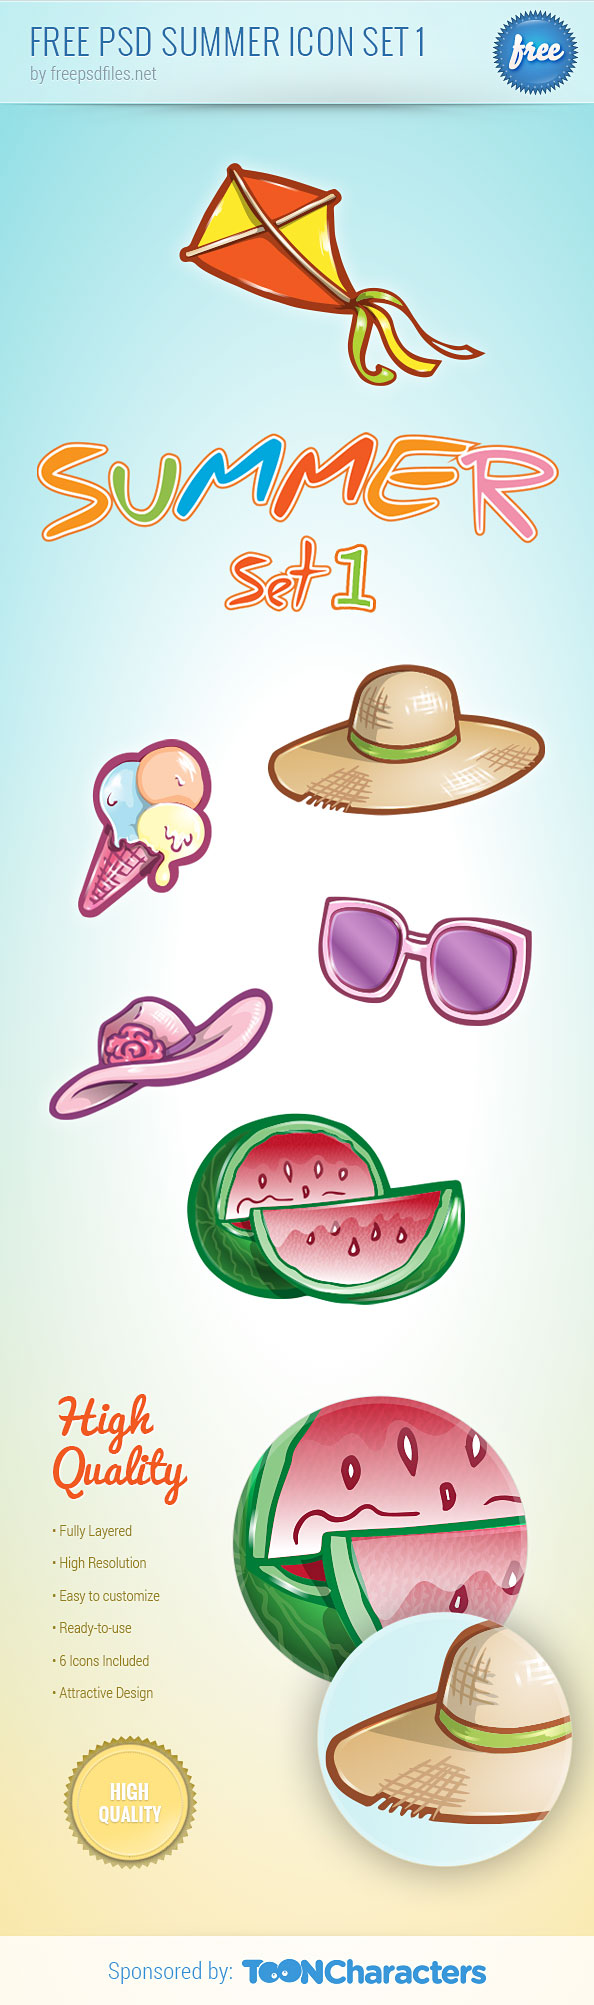 Free PSD Summer Icon Set Preview